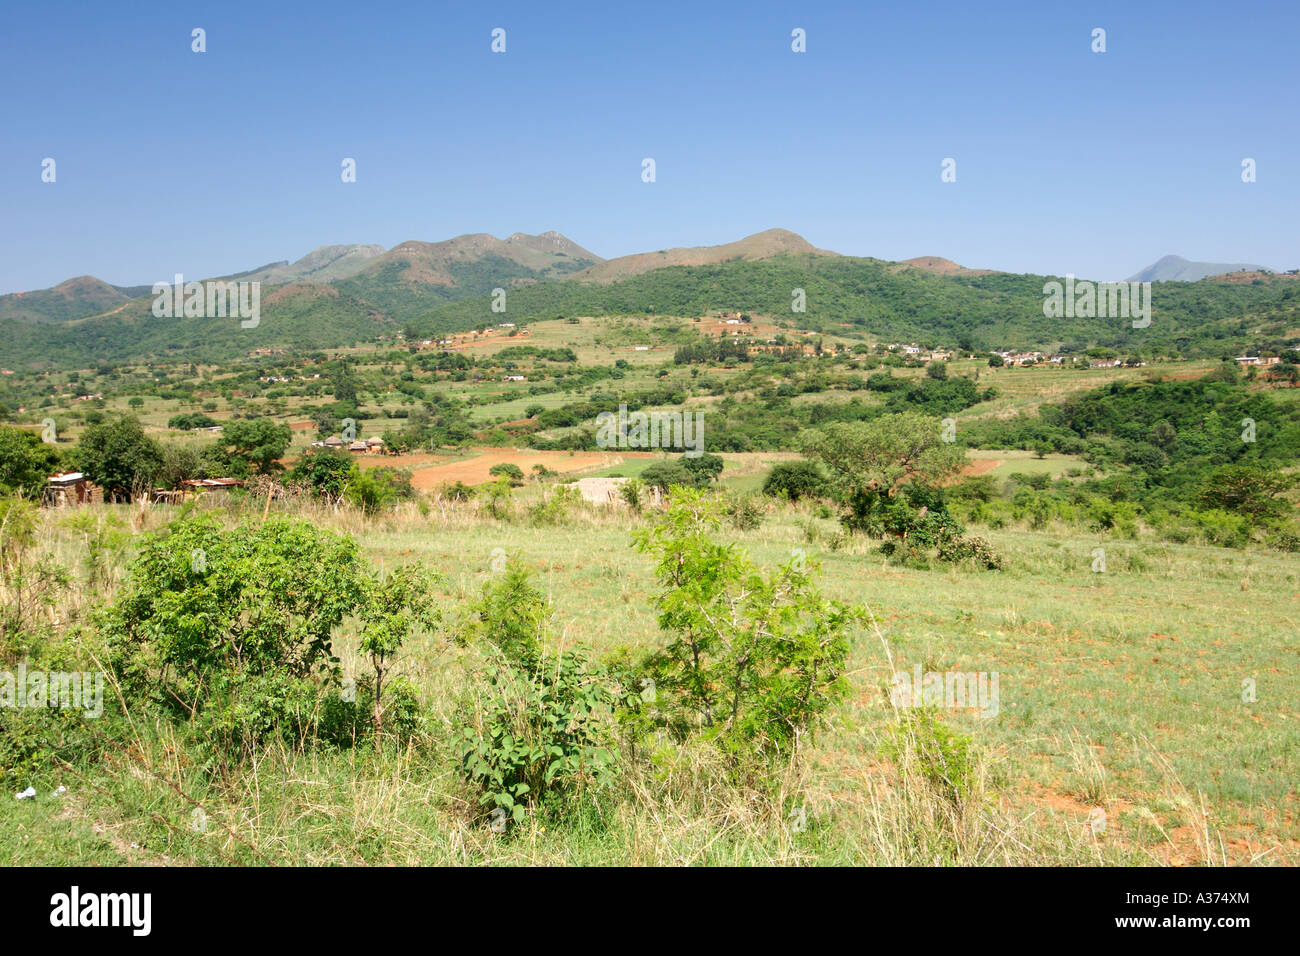 Scenery about 20km north of Piggs Peak in the Hhohho district of Swaziland Stock Photo